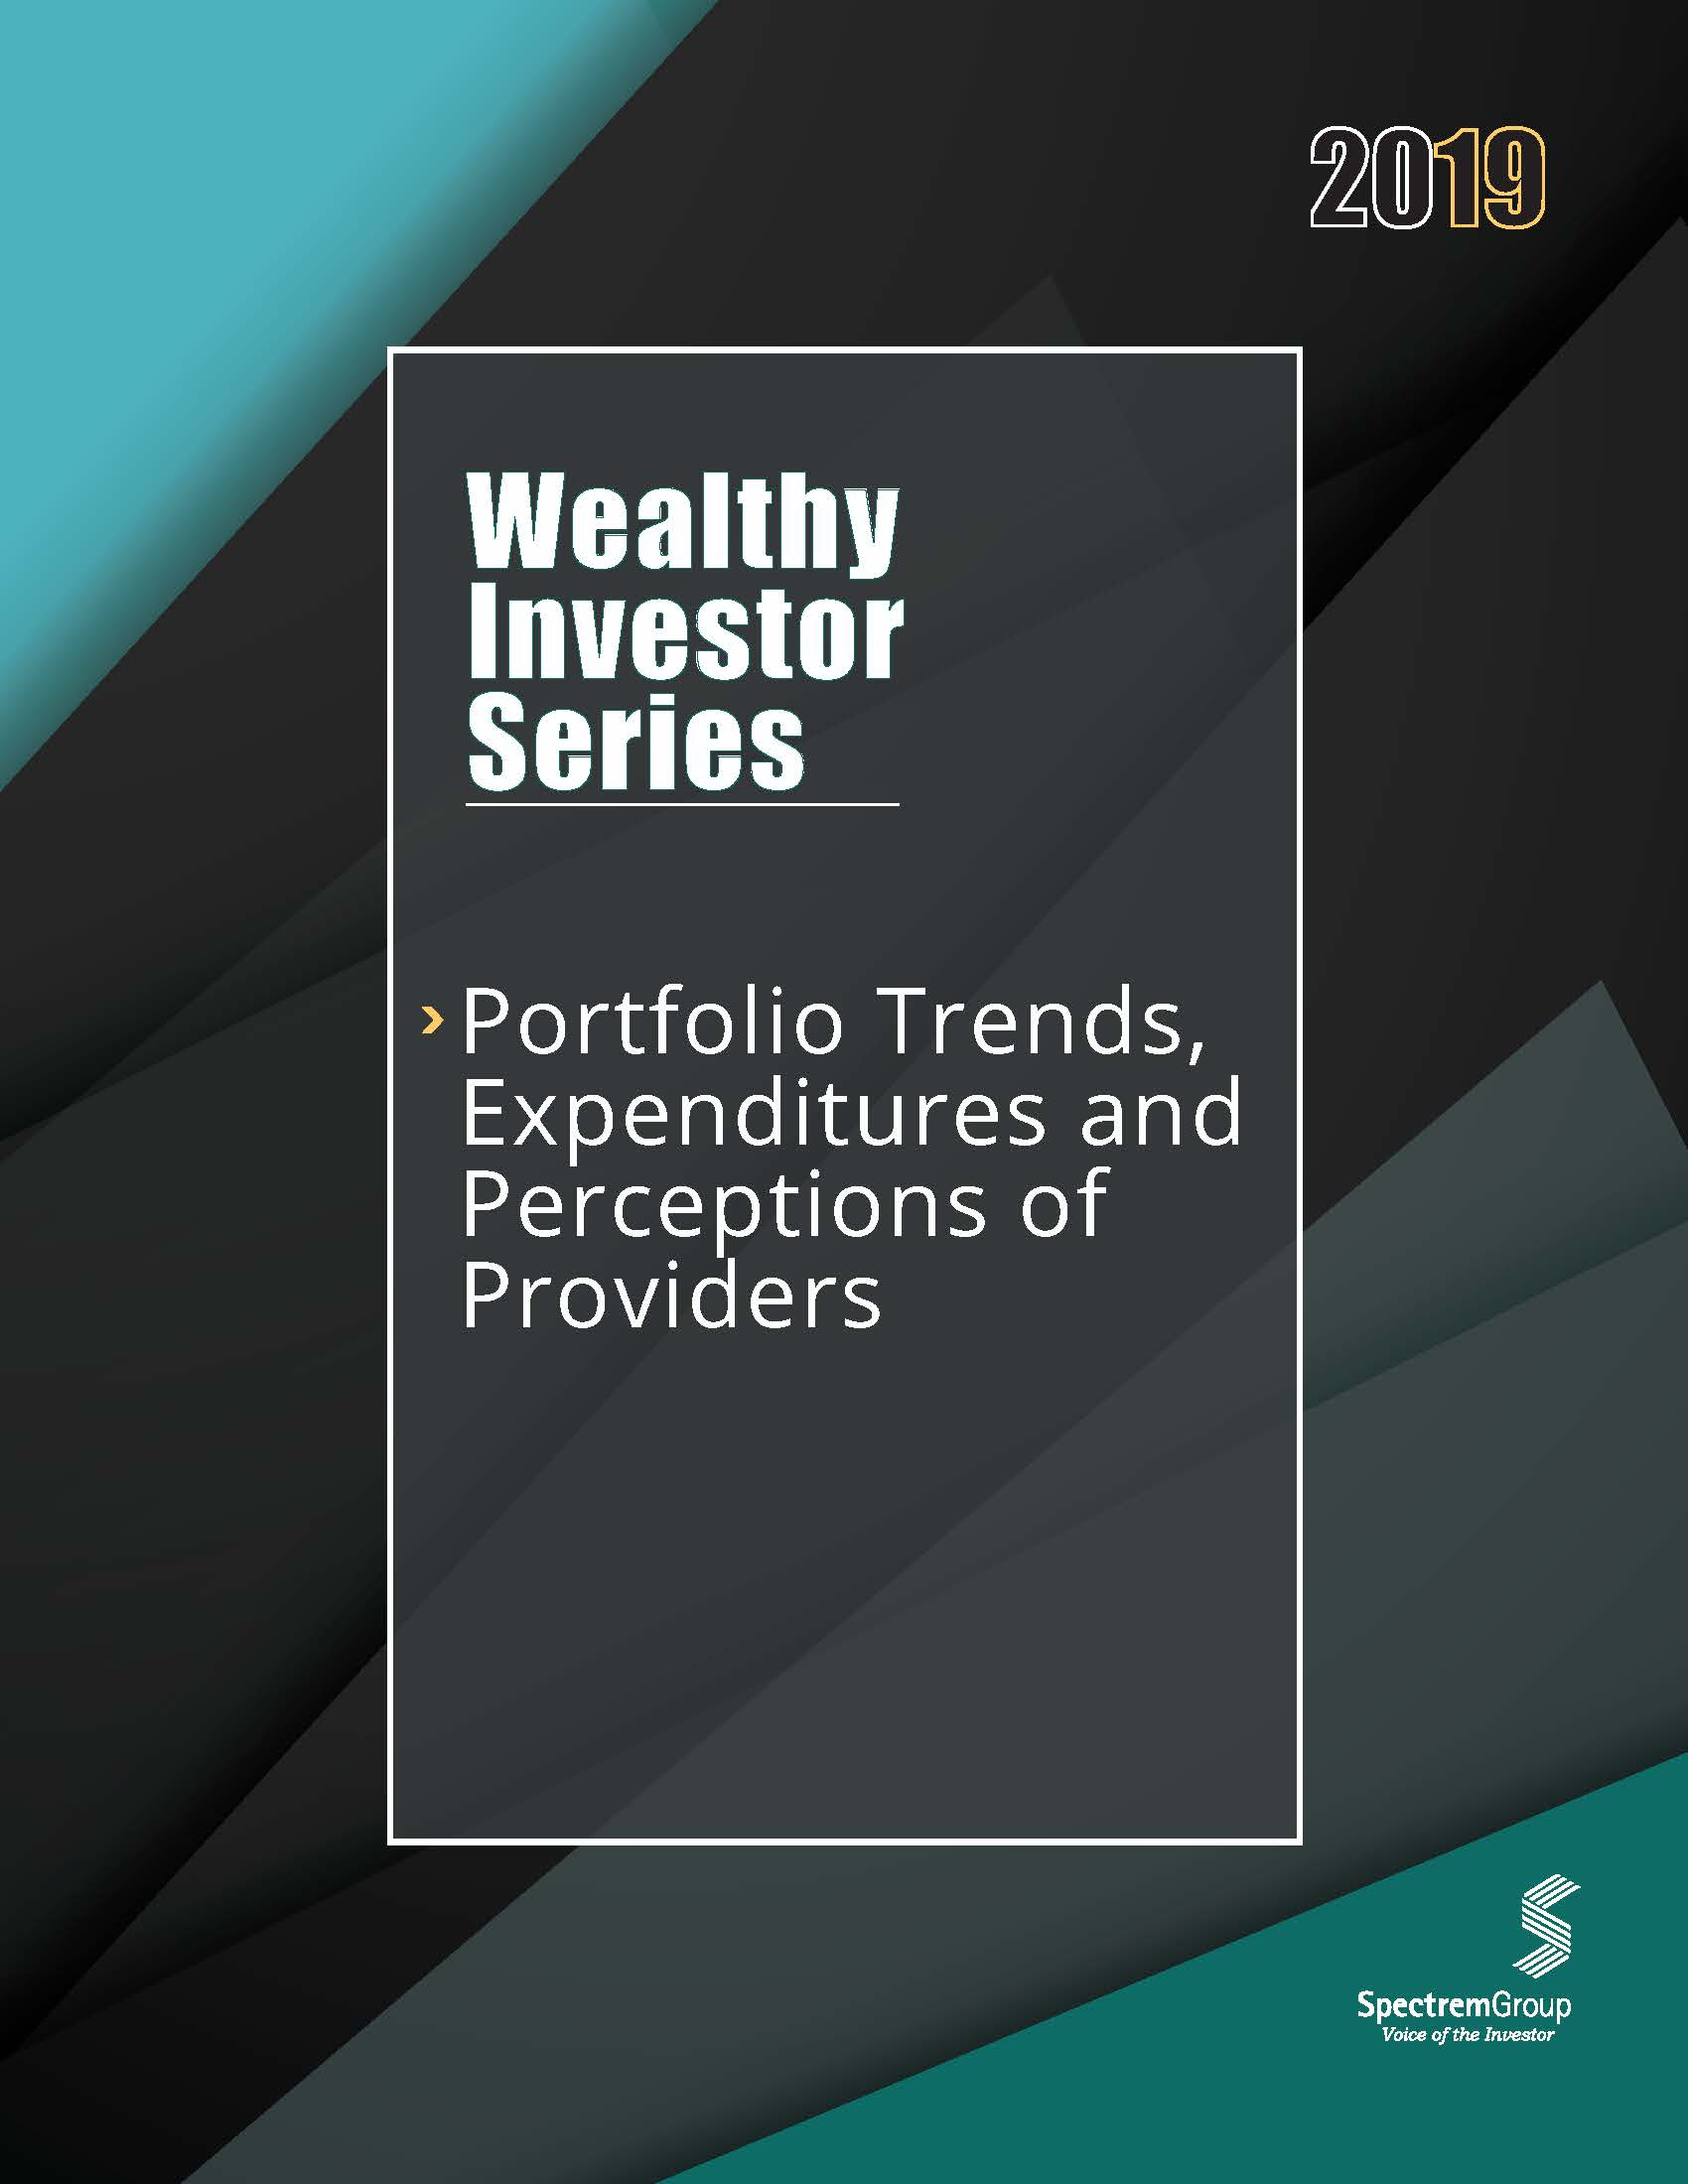 Wealthy Investor Series: Portfolio Trends, Expenditures, and Perceptions of Providers